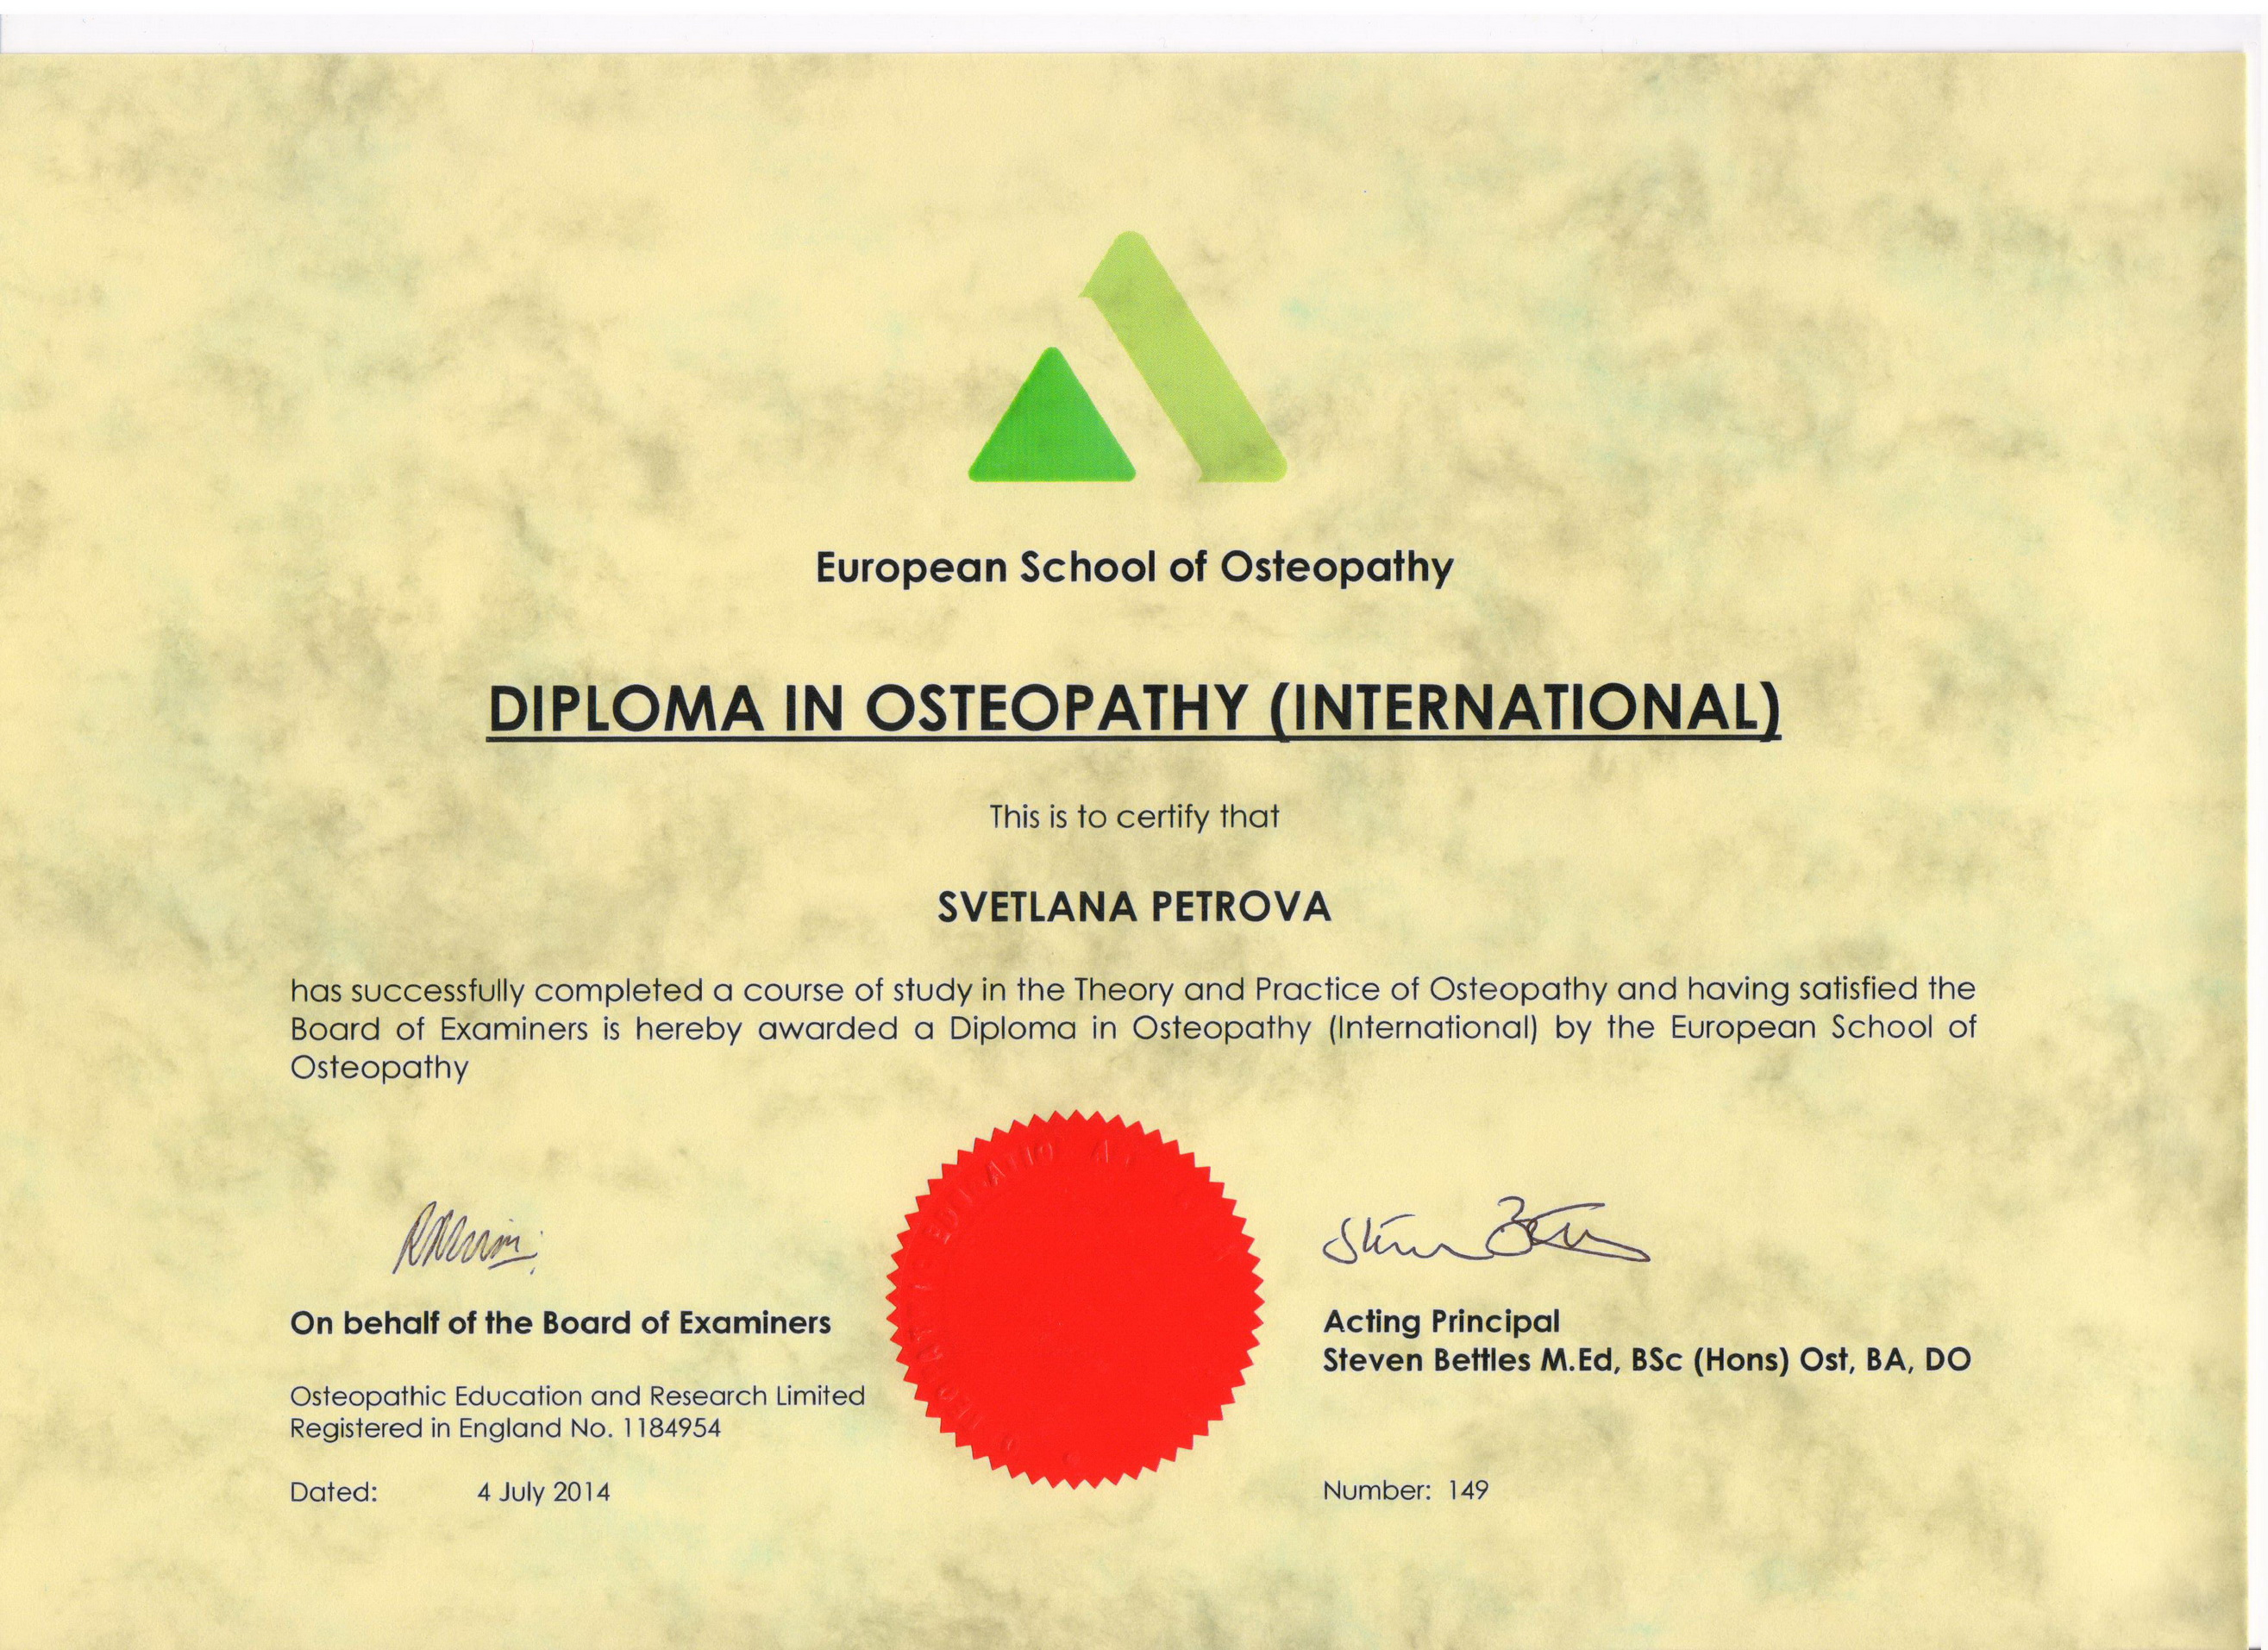 Diploma in Osteopathy (International)